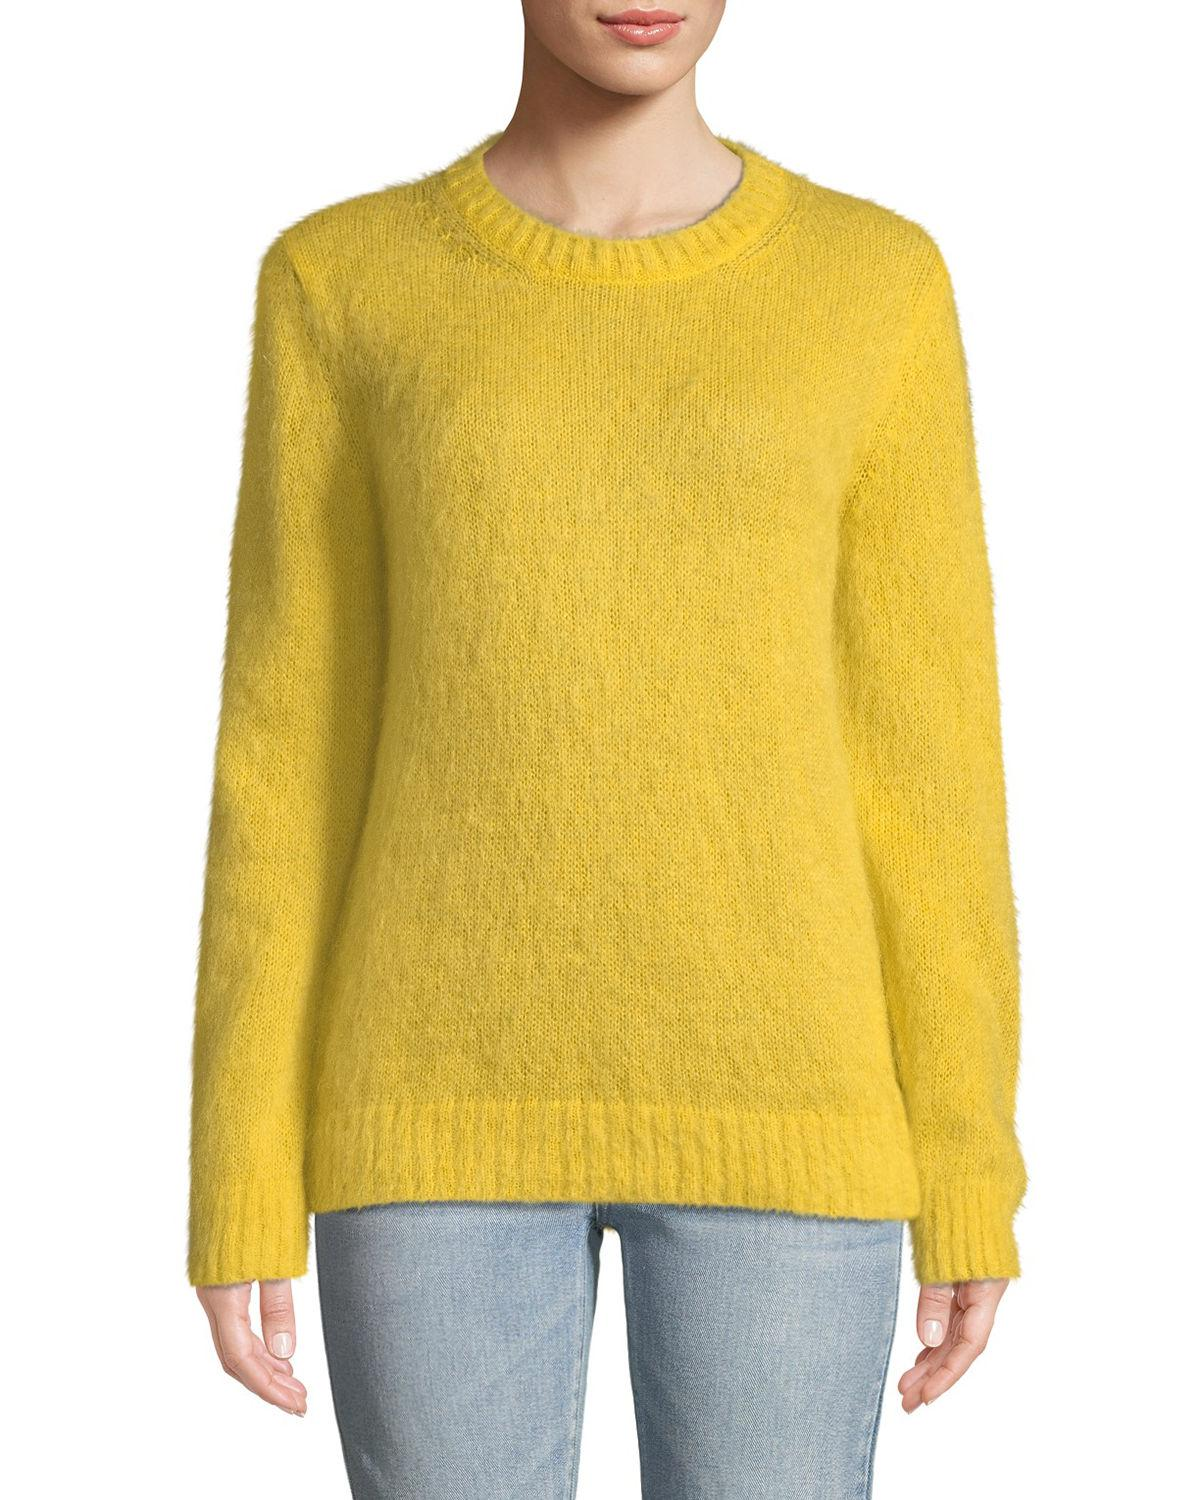 Moncler. Women's Yellow Mohair-blend Pullover Sweater